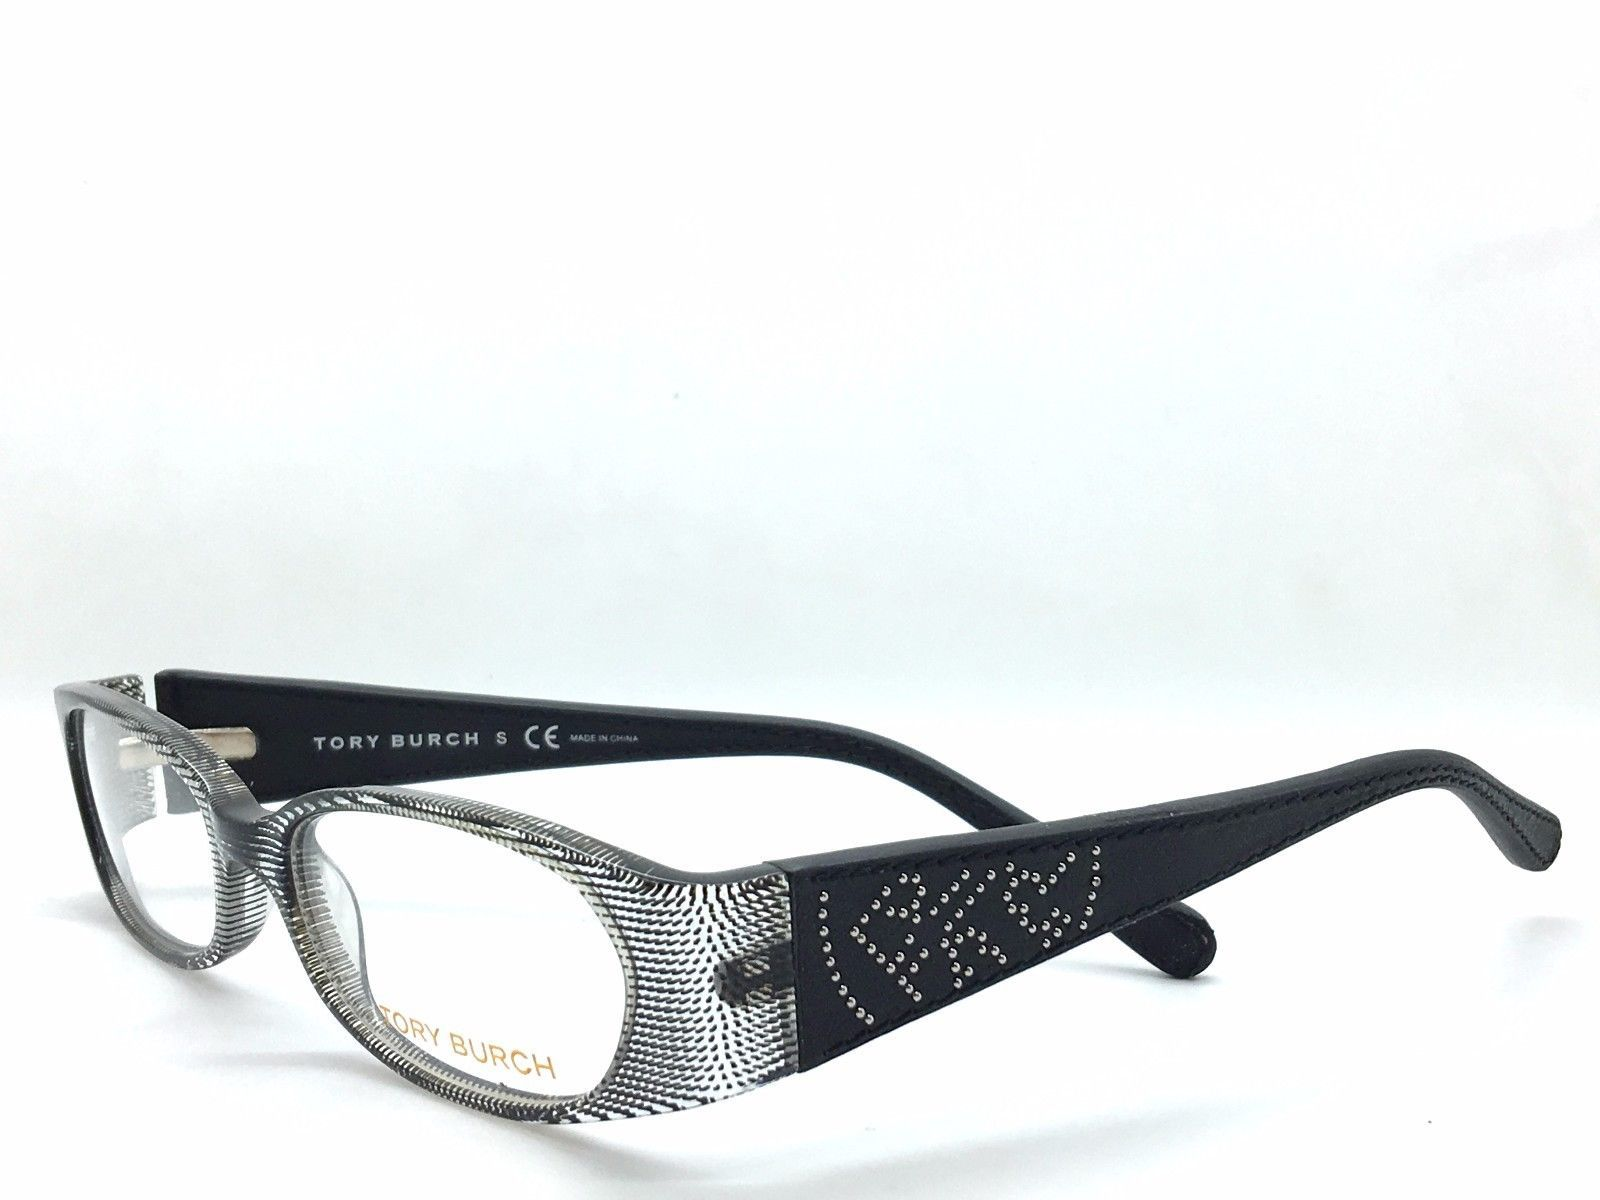 128478f2110b Tory Burch Eyeglasses Frames TY2011Q Black 842 Women's 50mm - $64.00